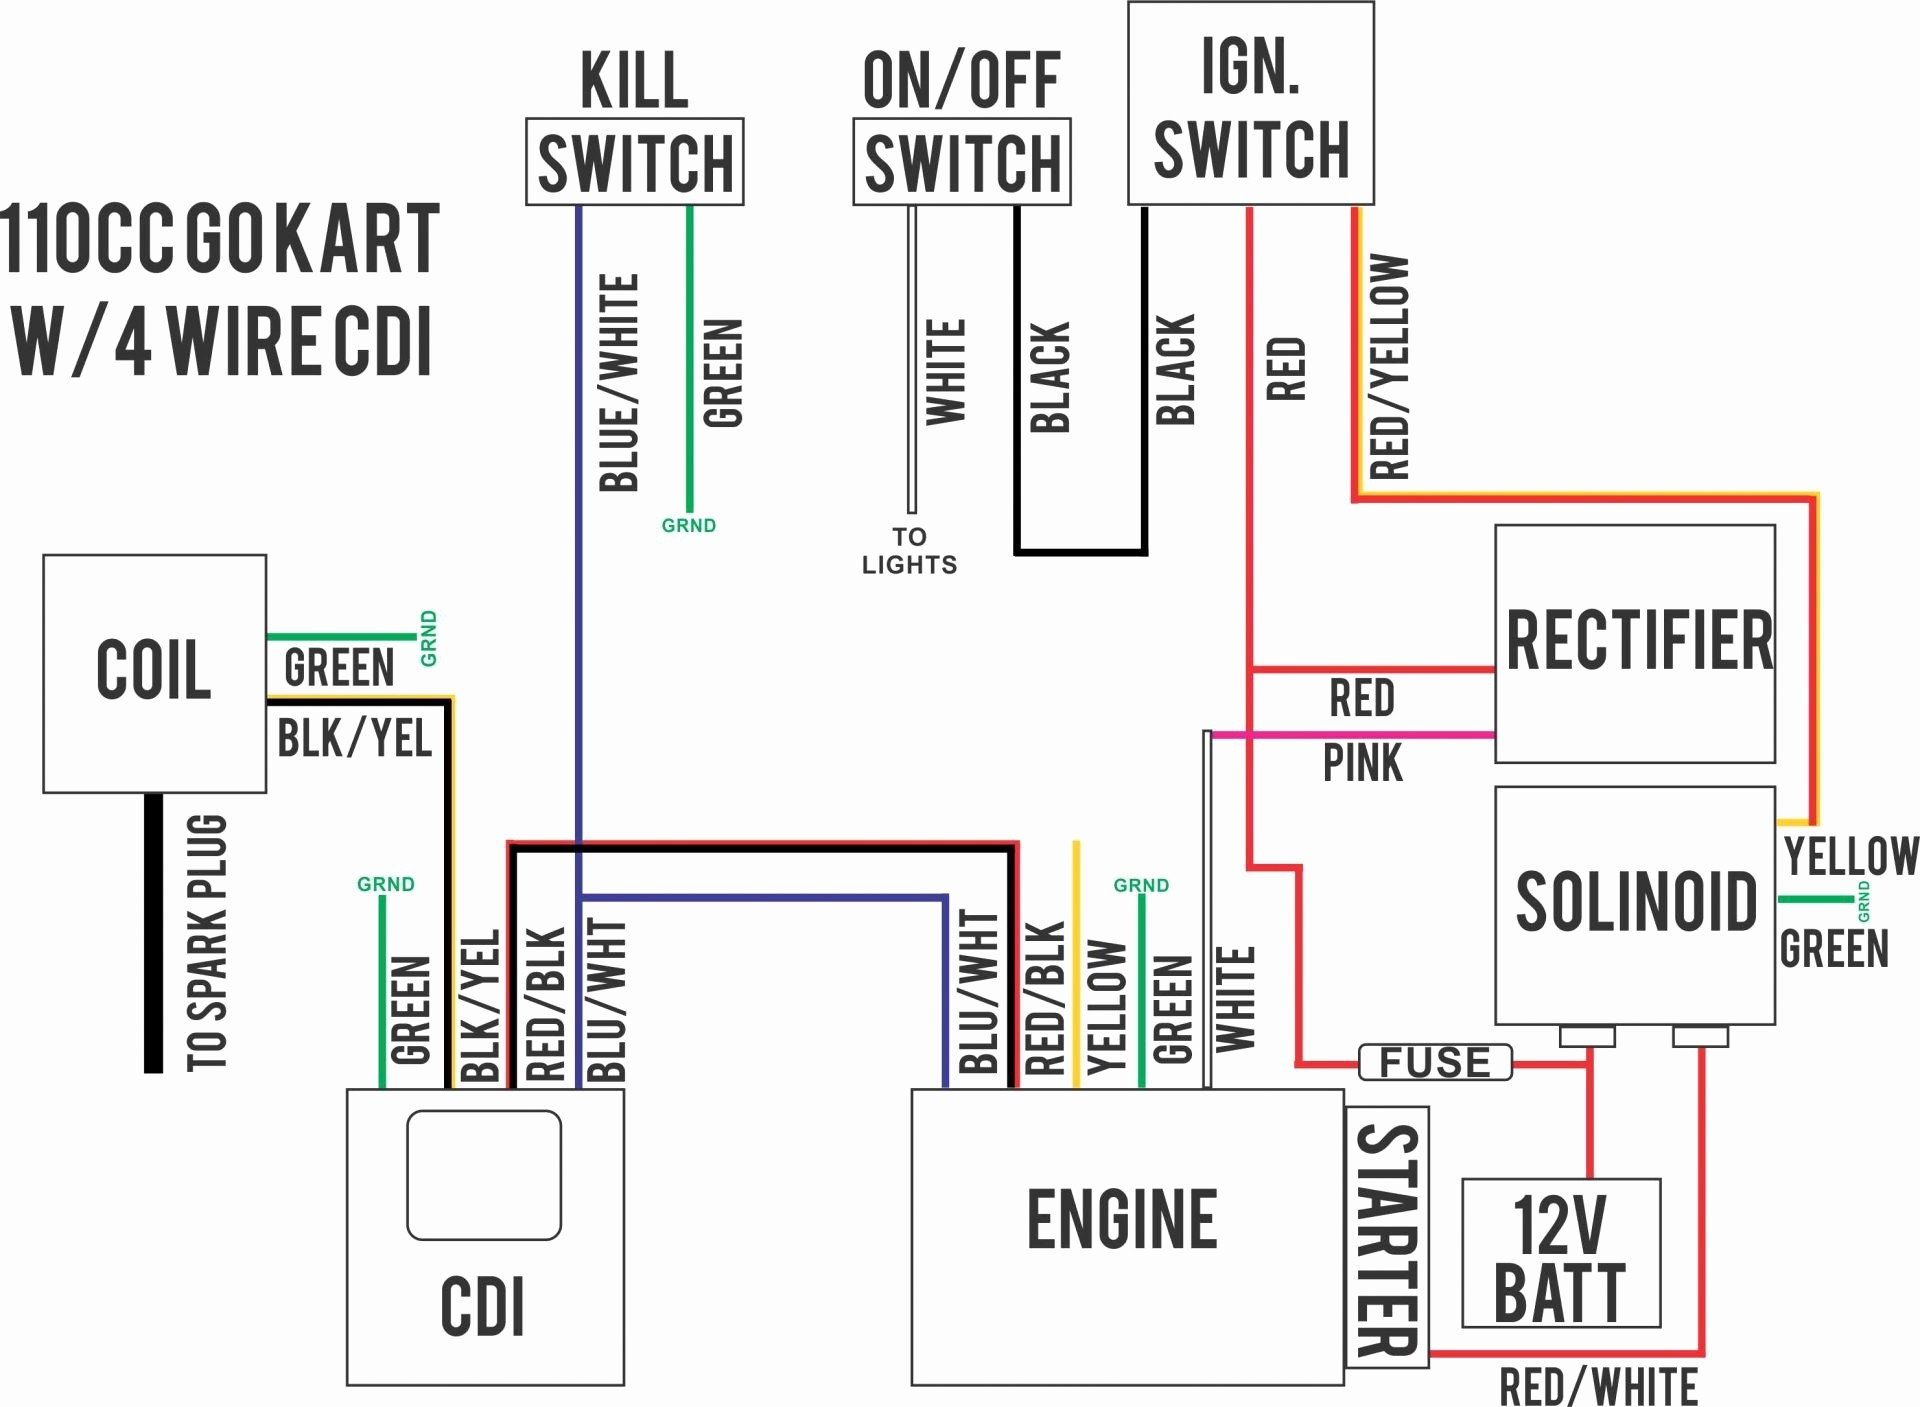 find out here burglar alarm wiring diagram pdf download Sanborn Air Compressor Wiring Diagram burglar alarm wiring diagram pdf wiring diagram for house alarm new wiring diagram bulldog security